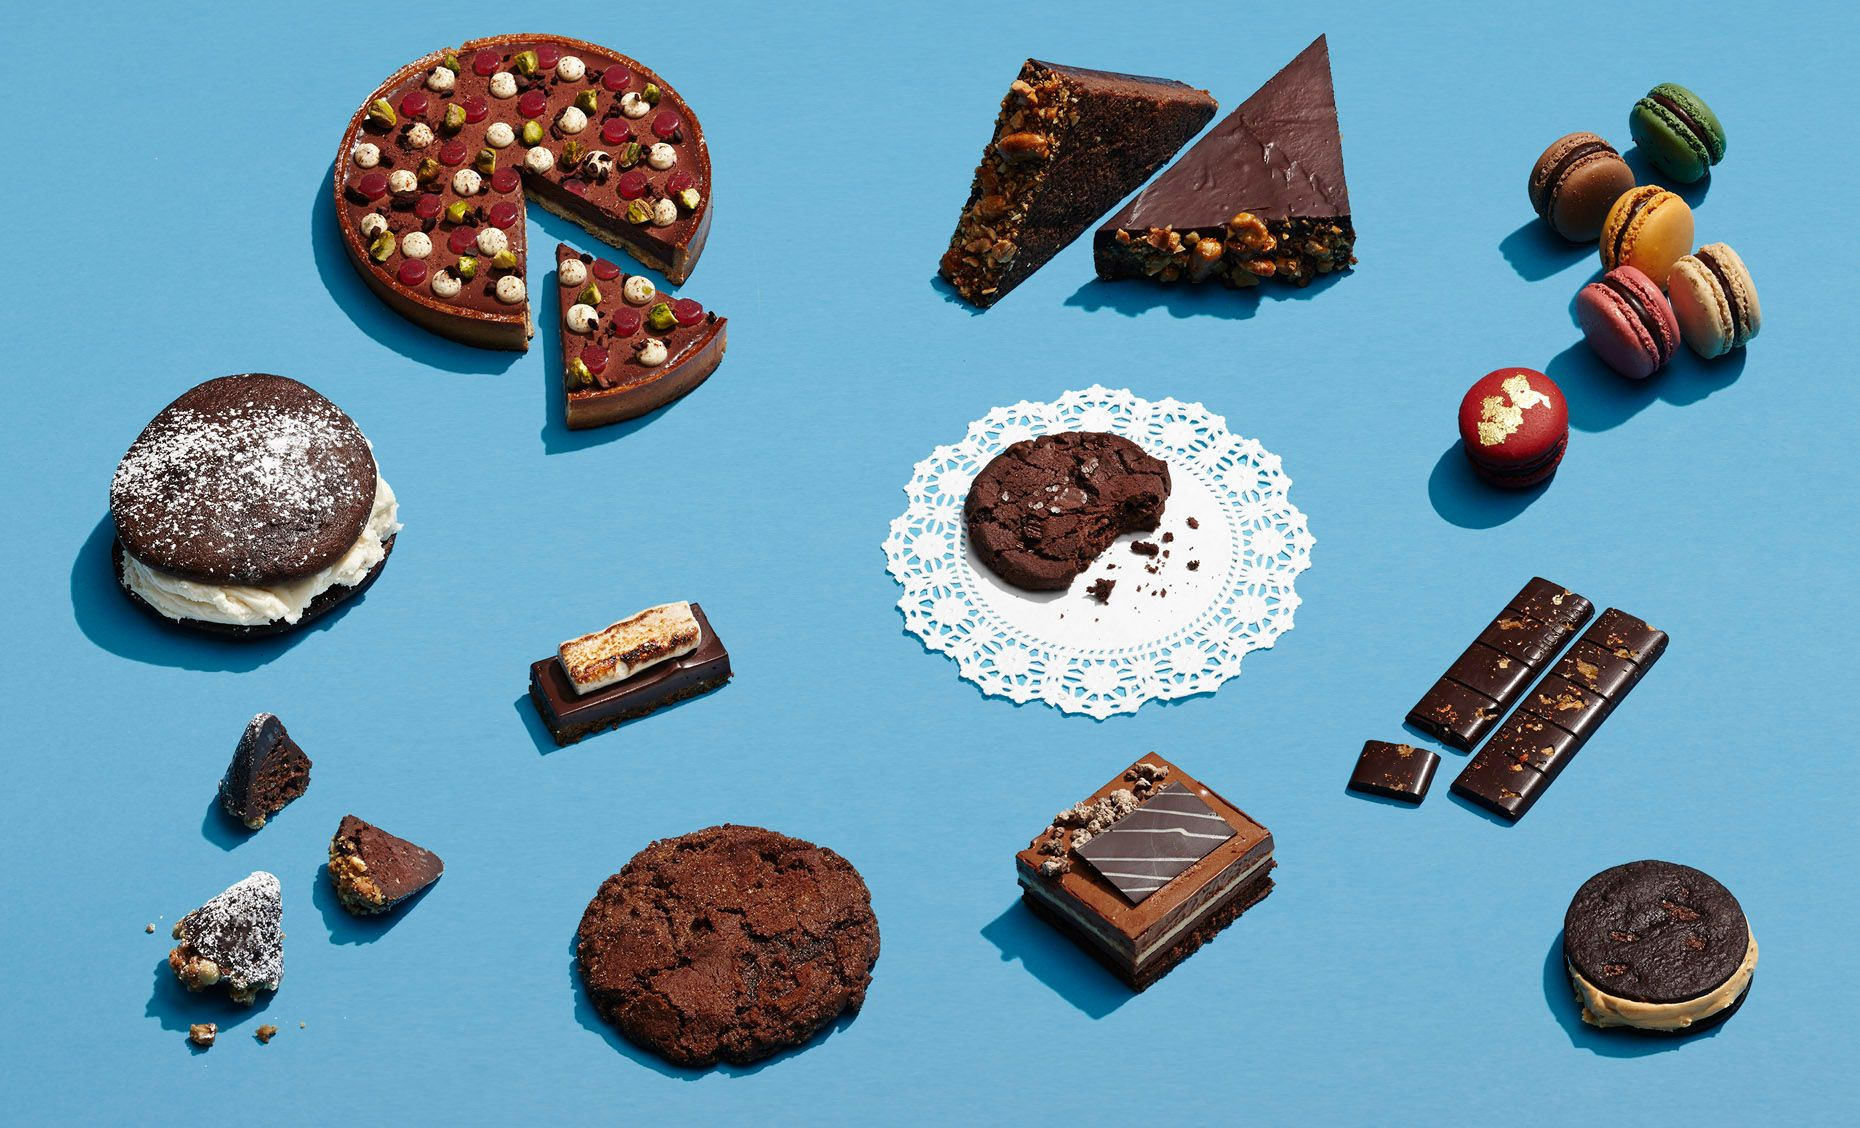 Maren Caruso - Food and Still Life Photography | Still ...